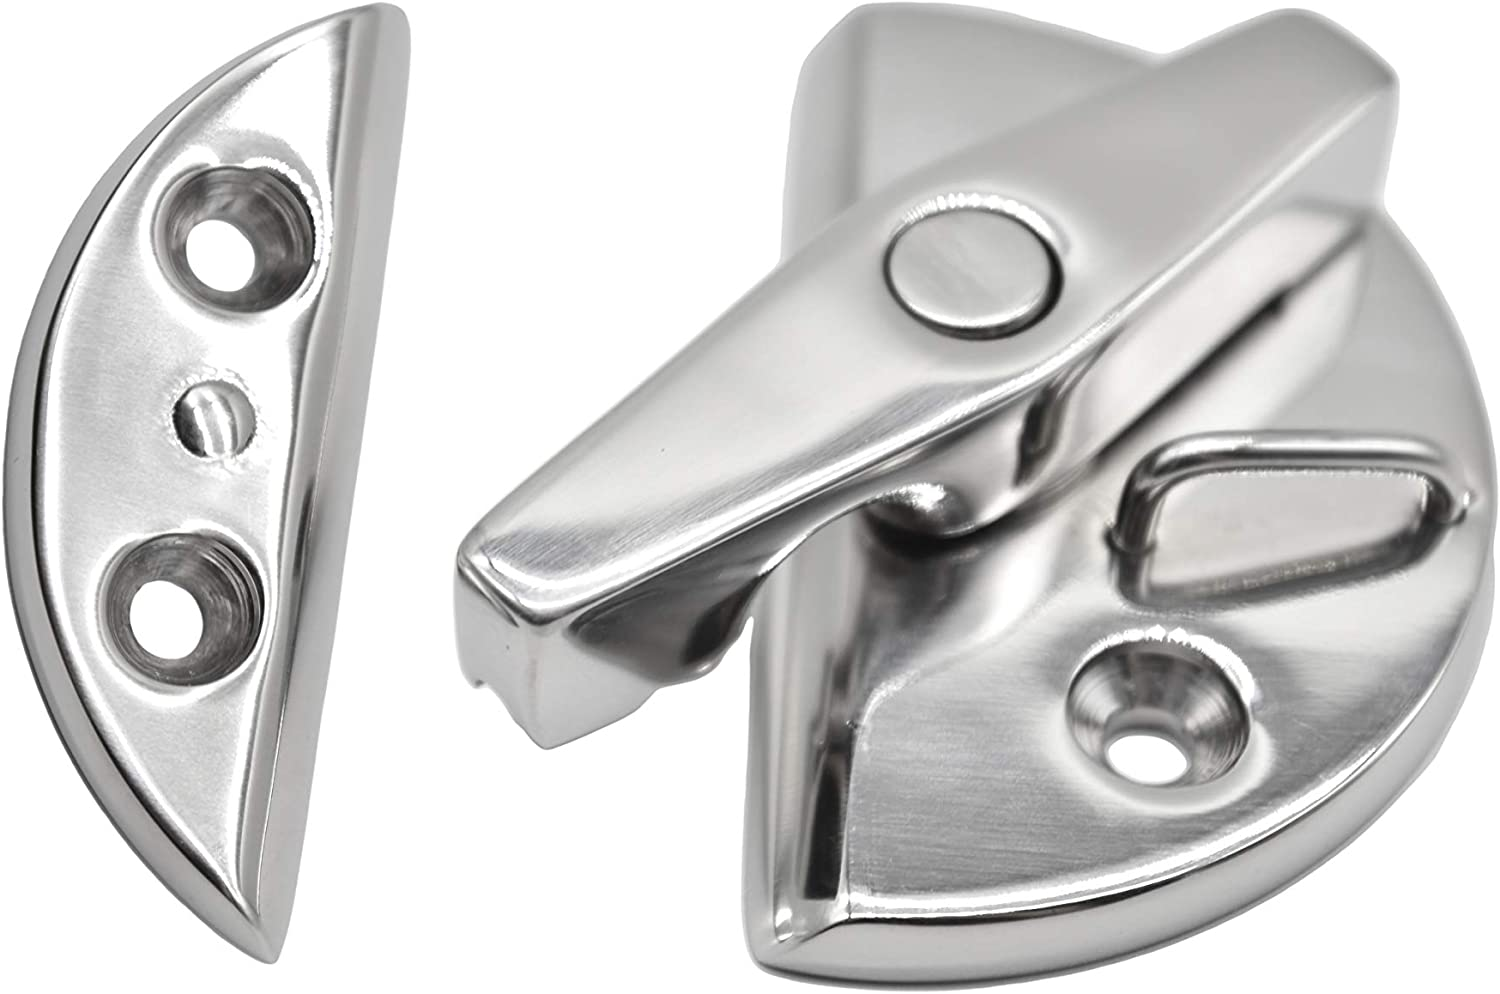 Deck Hatch Latch Door Catch Twist Locking Stainless Steel